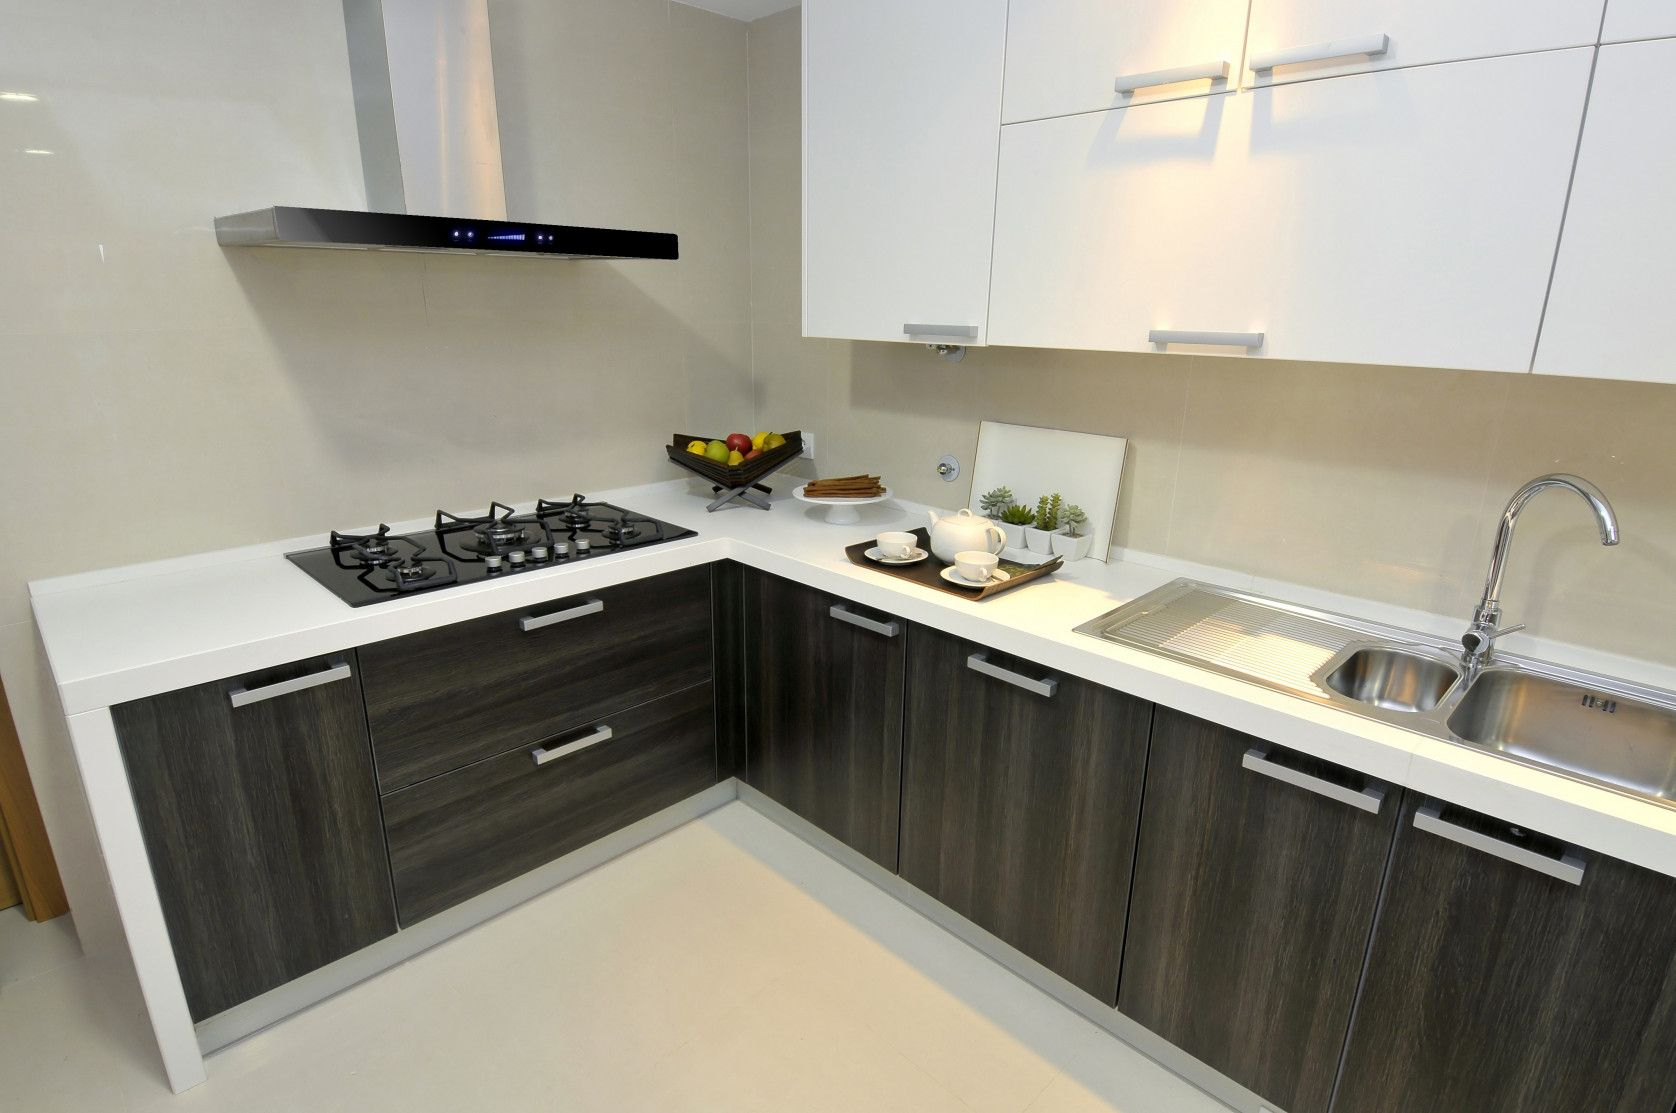 99 White Formica Kitchen Cabinets Kitchen Cabinet Inserts Ideas Check More At Http Contemporary Kitchen Kitchen Cabinet Styles Contemporary Kitchen Cabinets